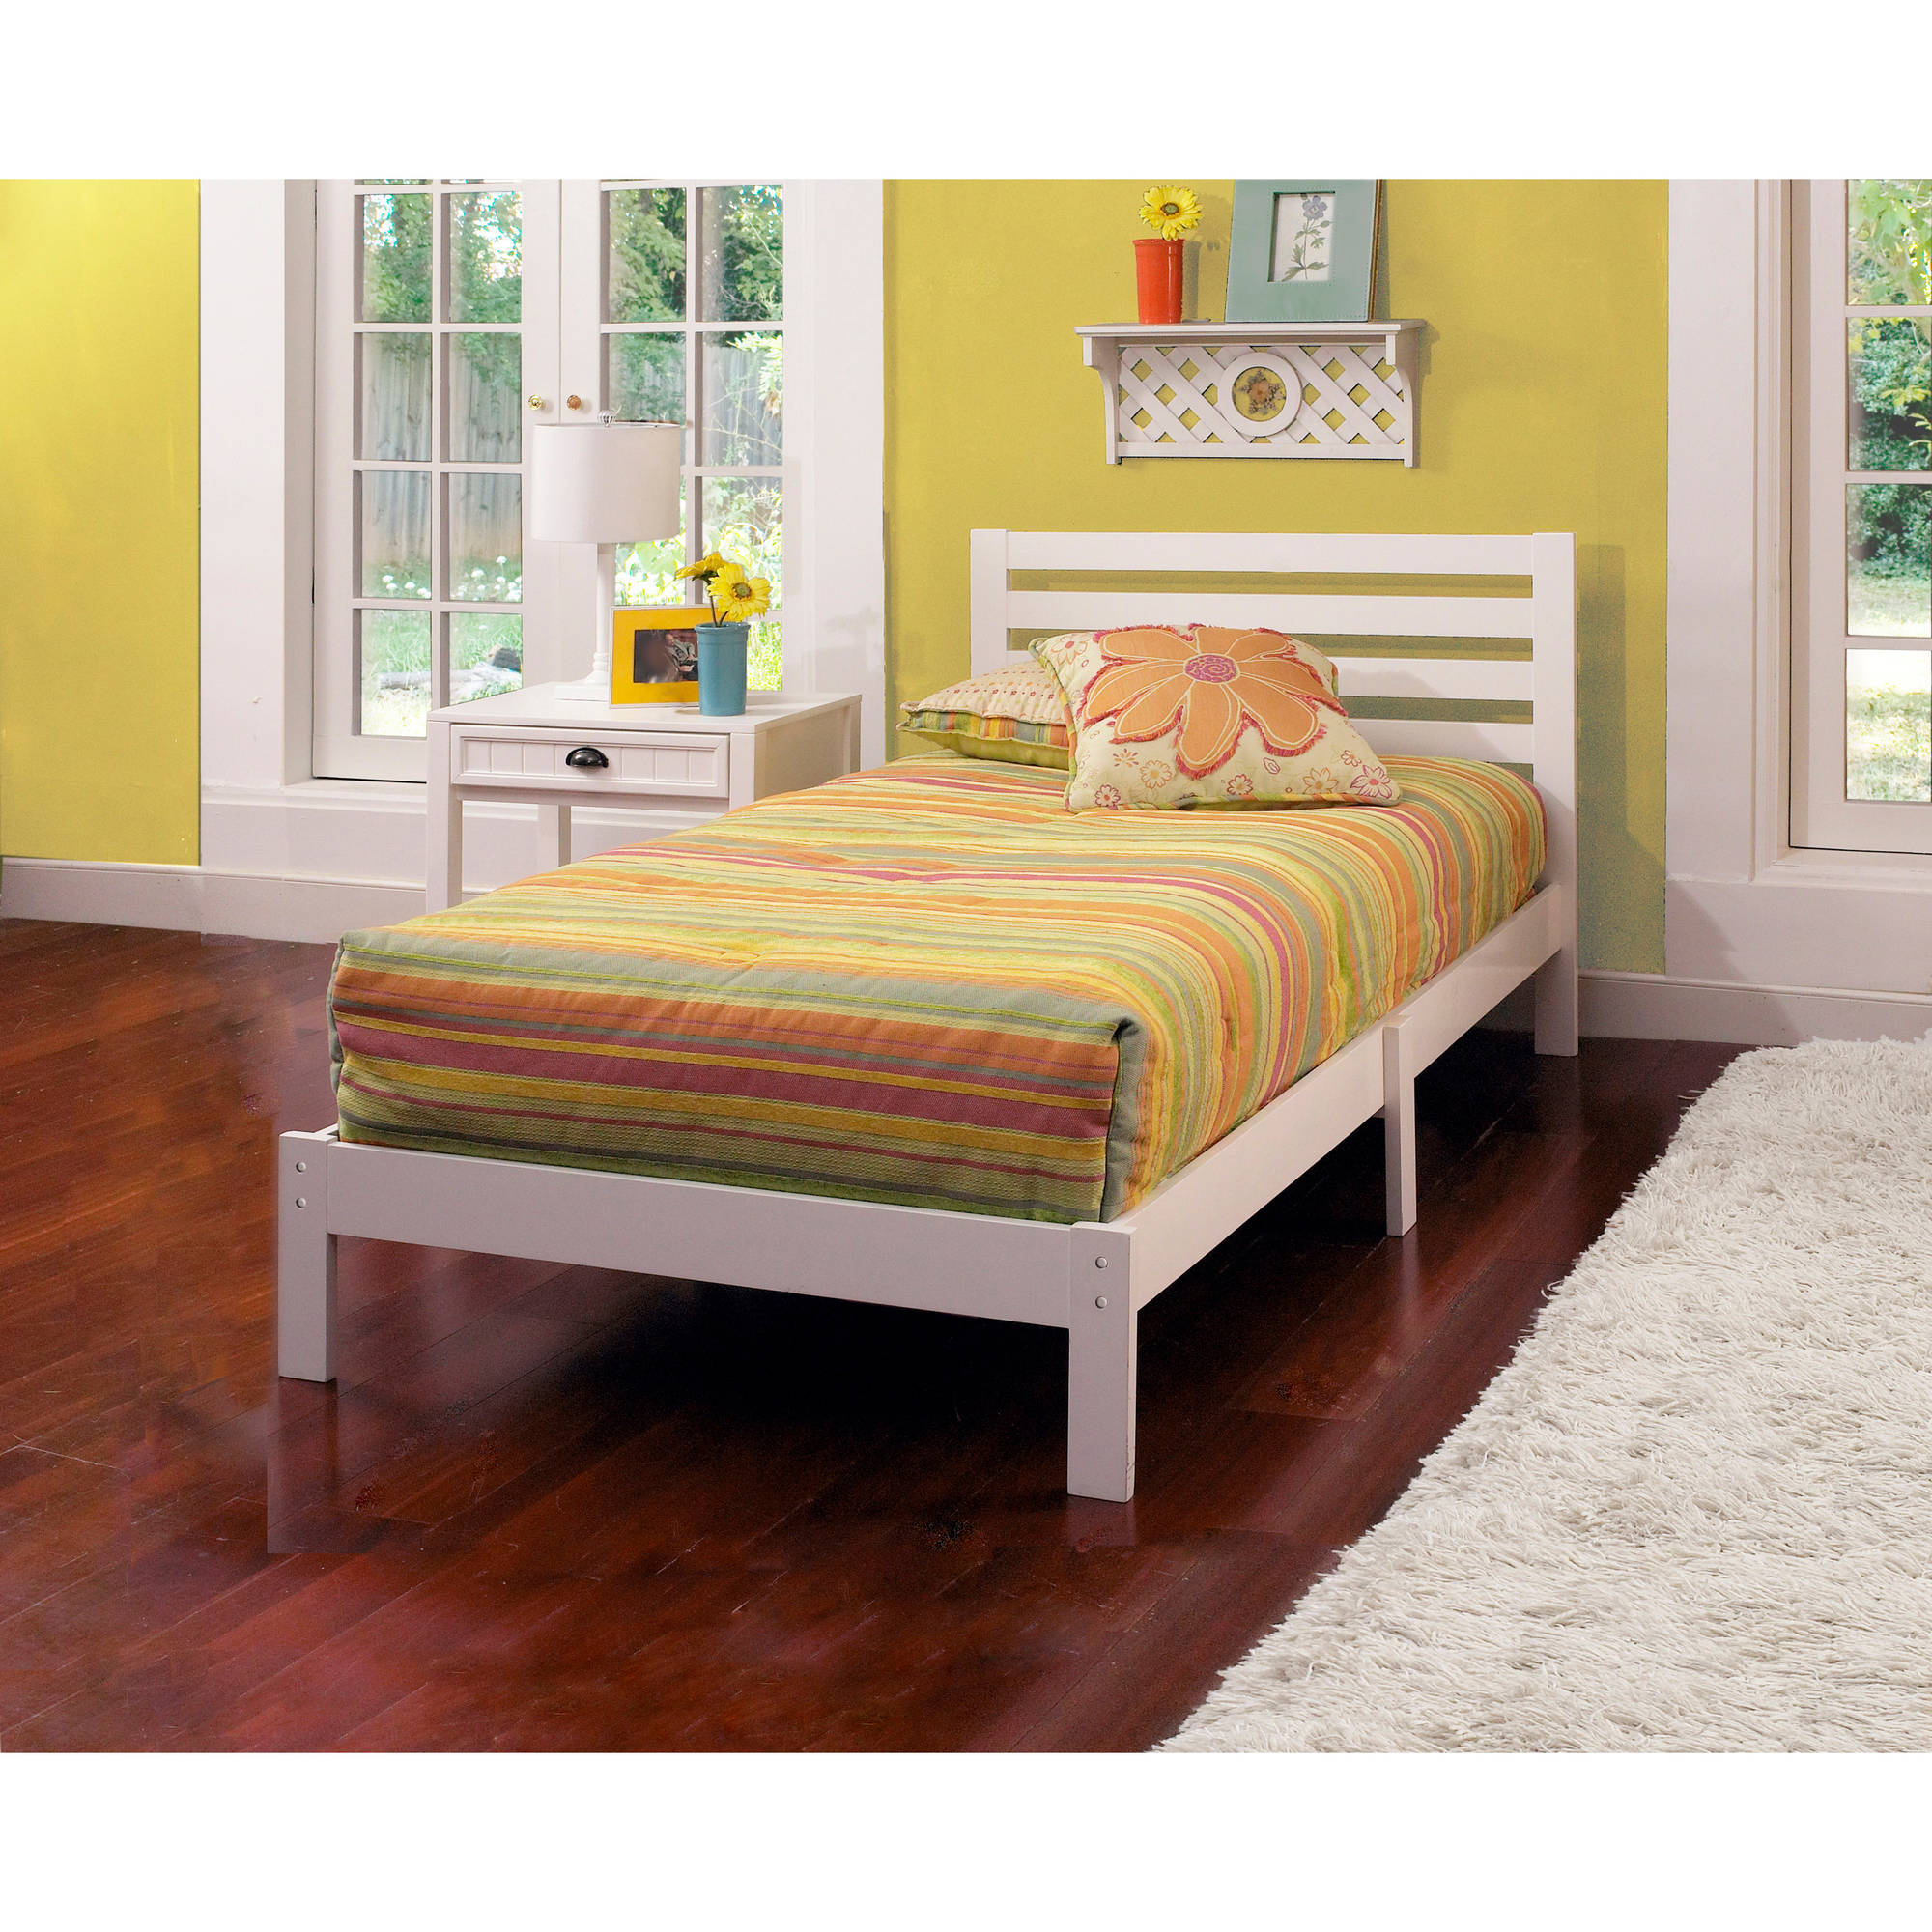 White Twin Bed Frames aiden twin bed, white - walmart